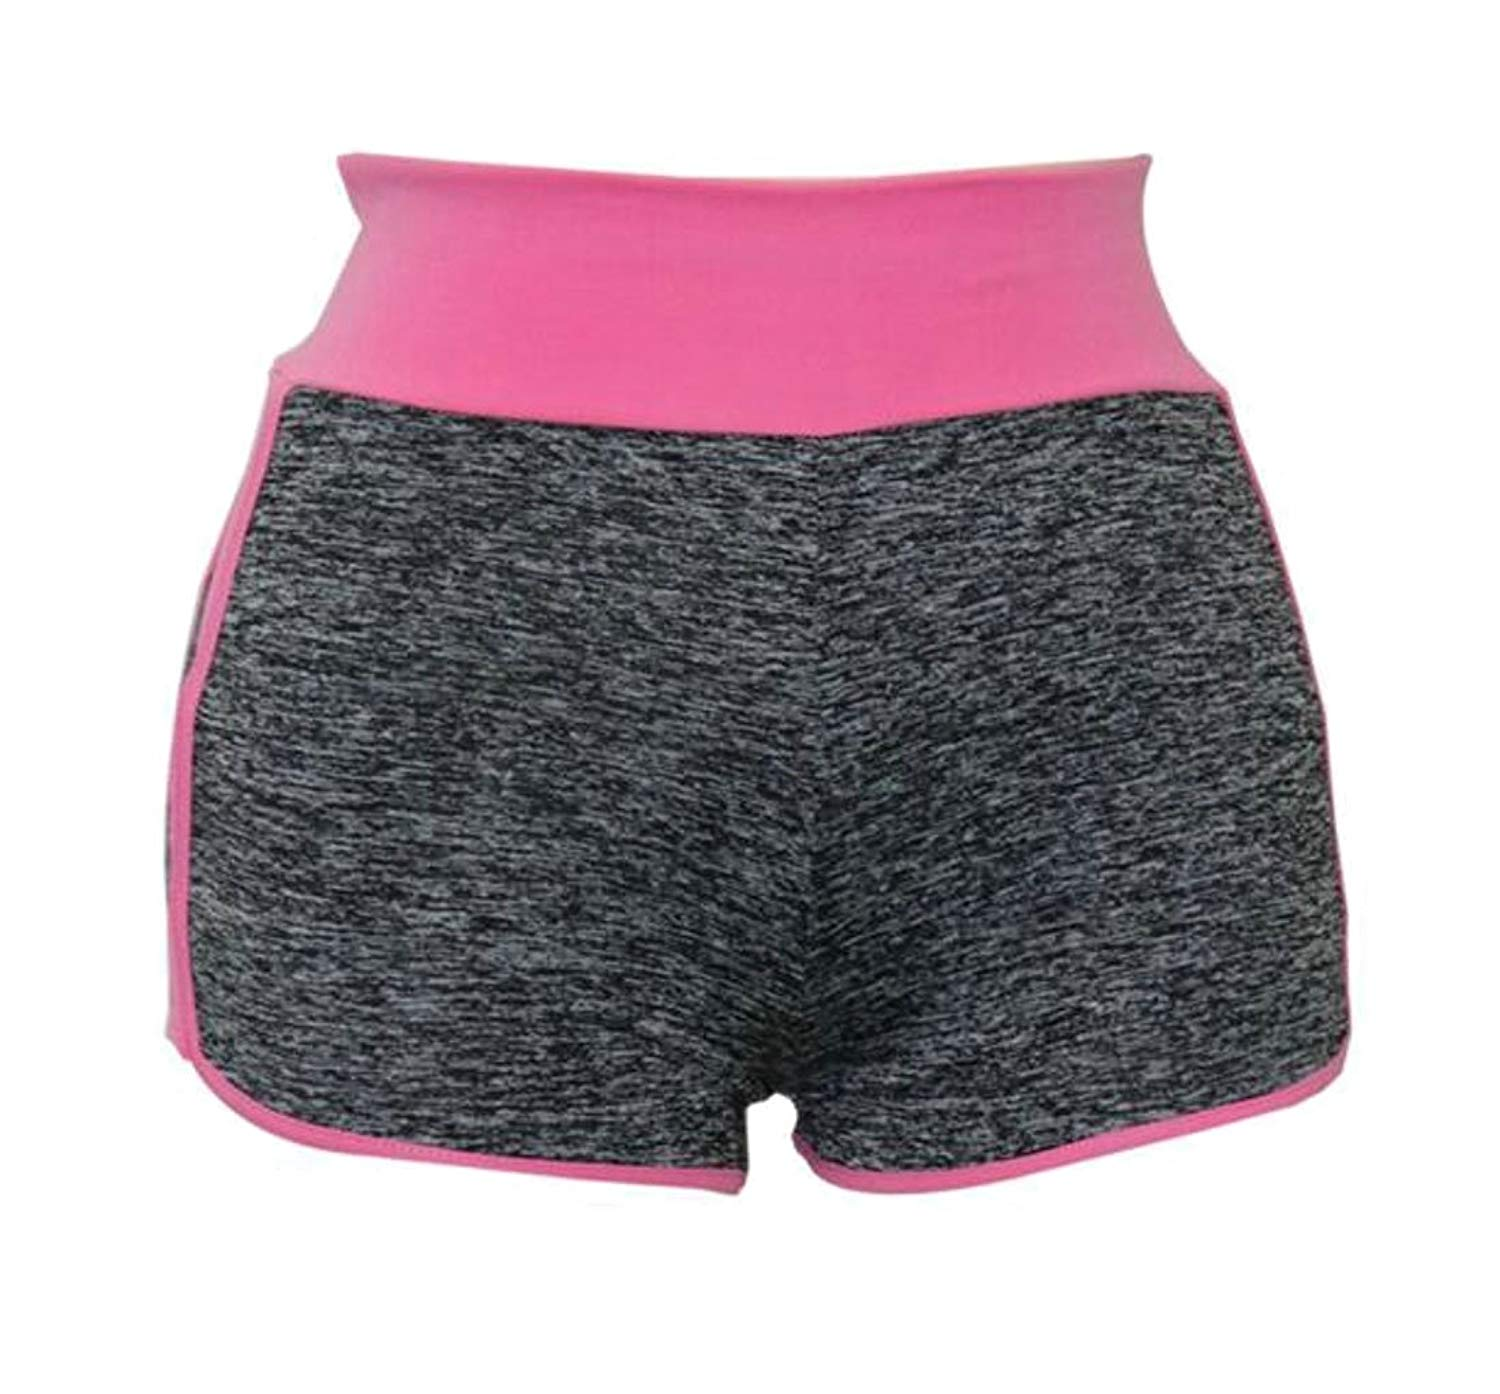 7fec836e4b Get Quotations · Beloved Womens Workout Shorts Fitness Running Shorts  Stretch Sport Yoga Shorts